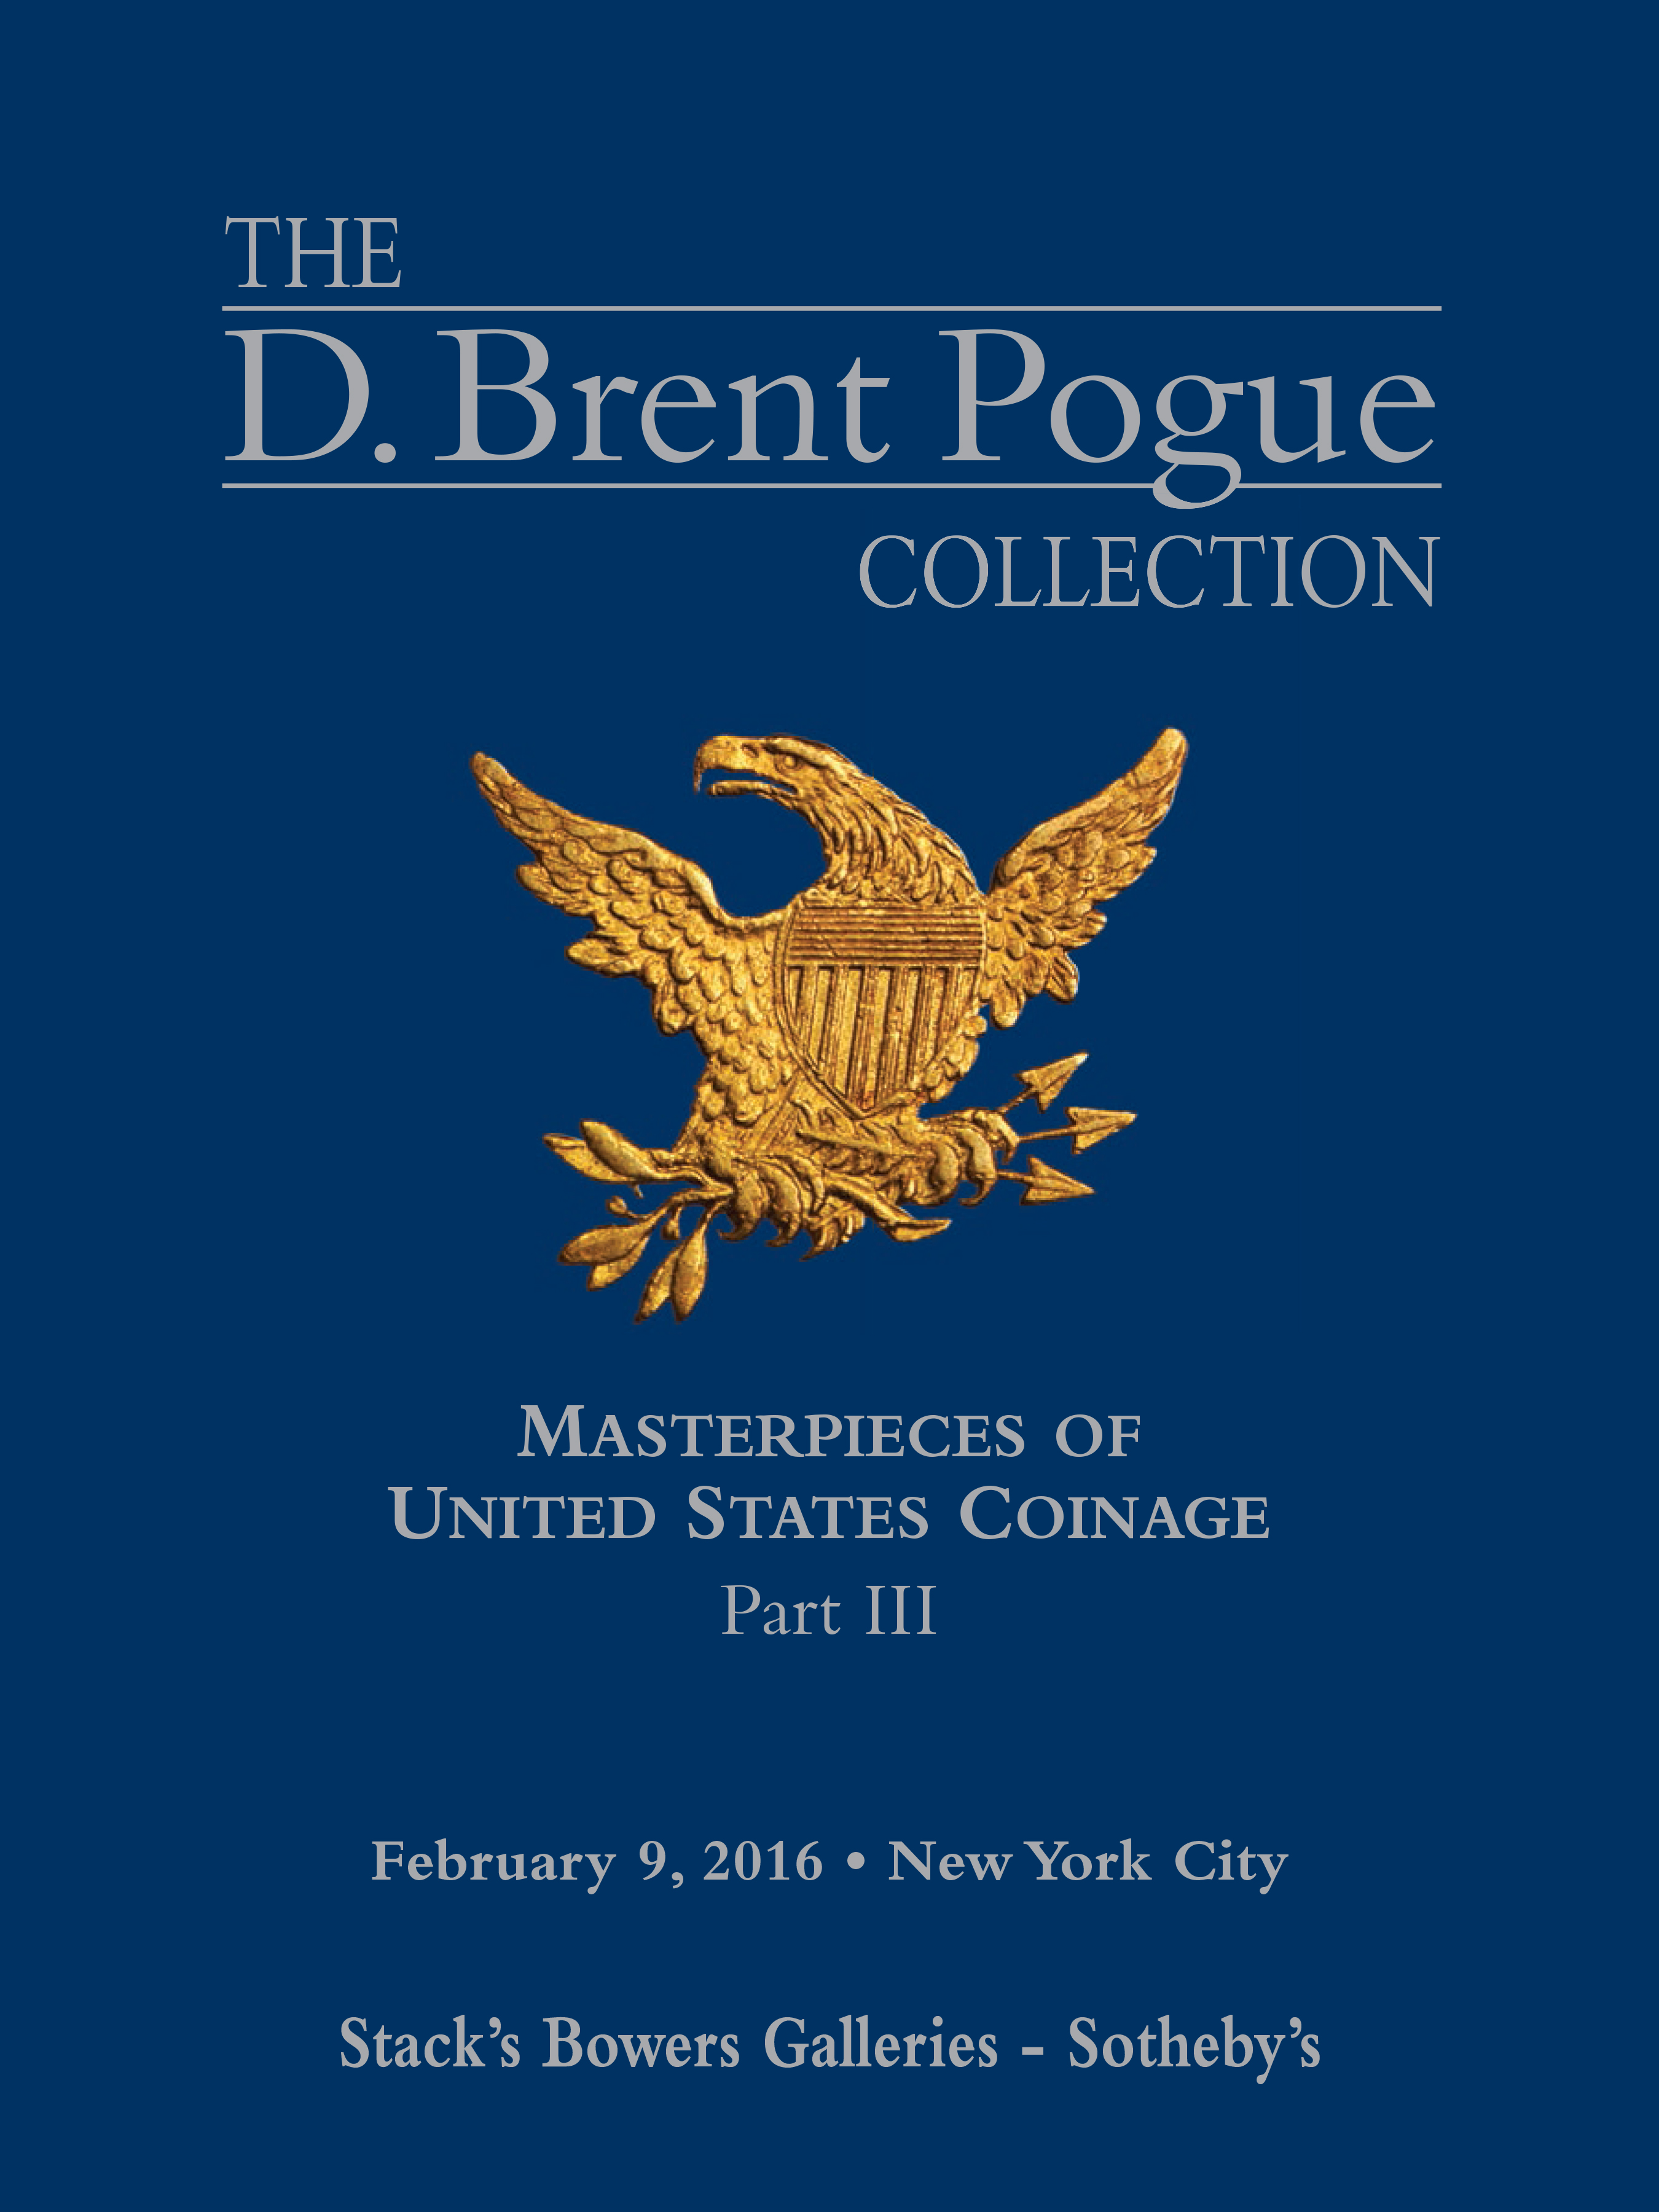 The D. Brent Pogue Collection, Masterpieces of United States Coinage, Part III